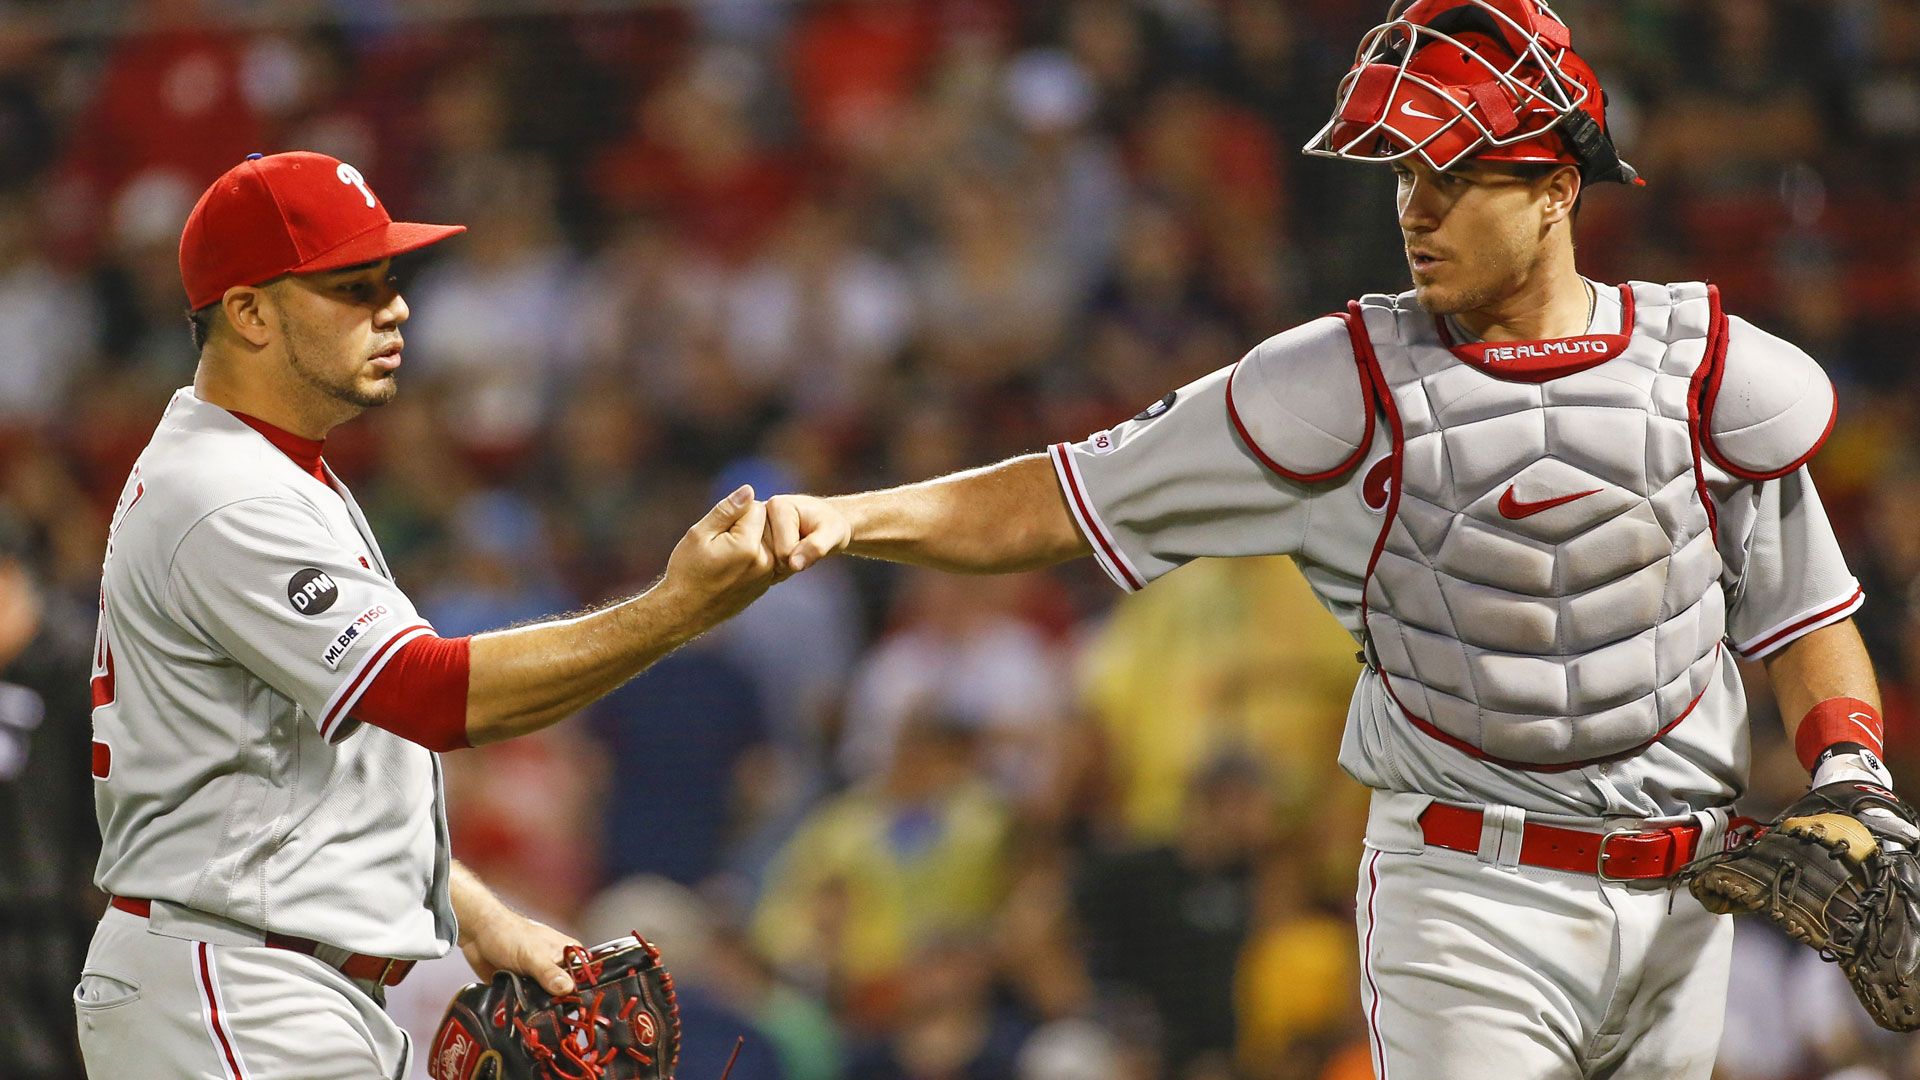 New acquisitions in Phils' bullpen shine in Boston